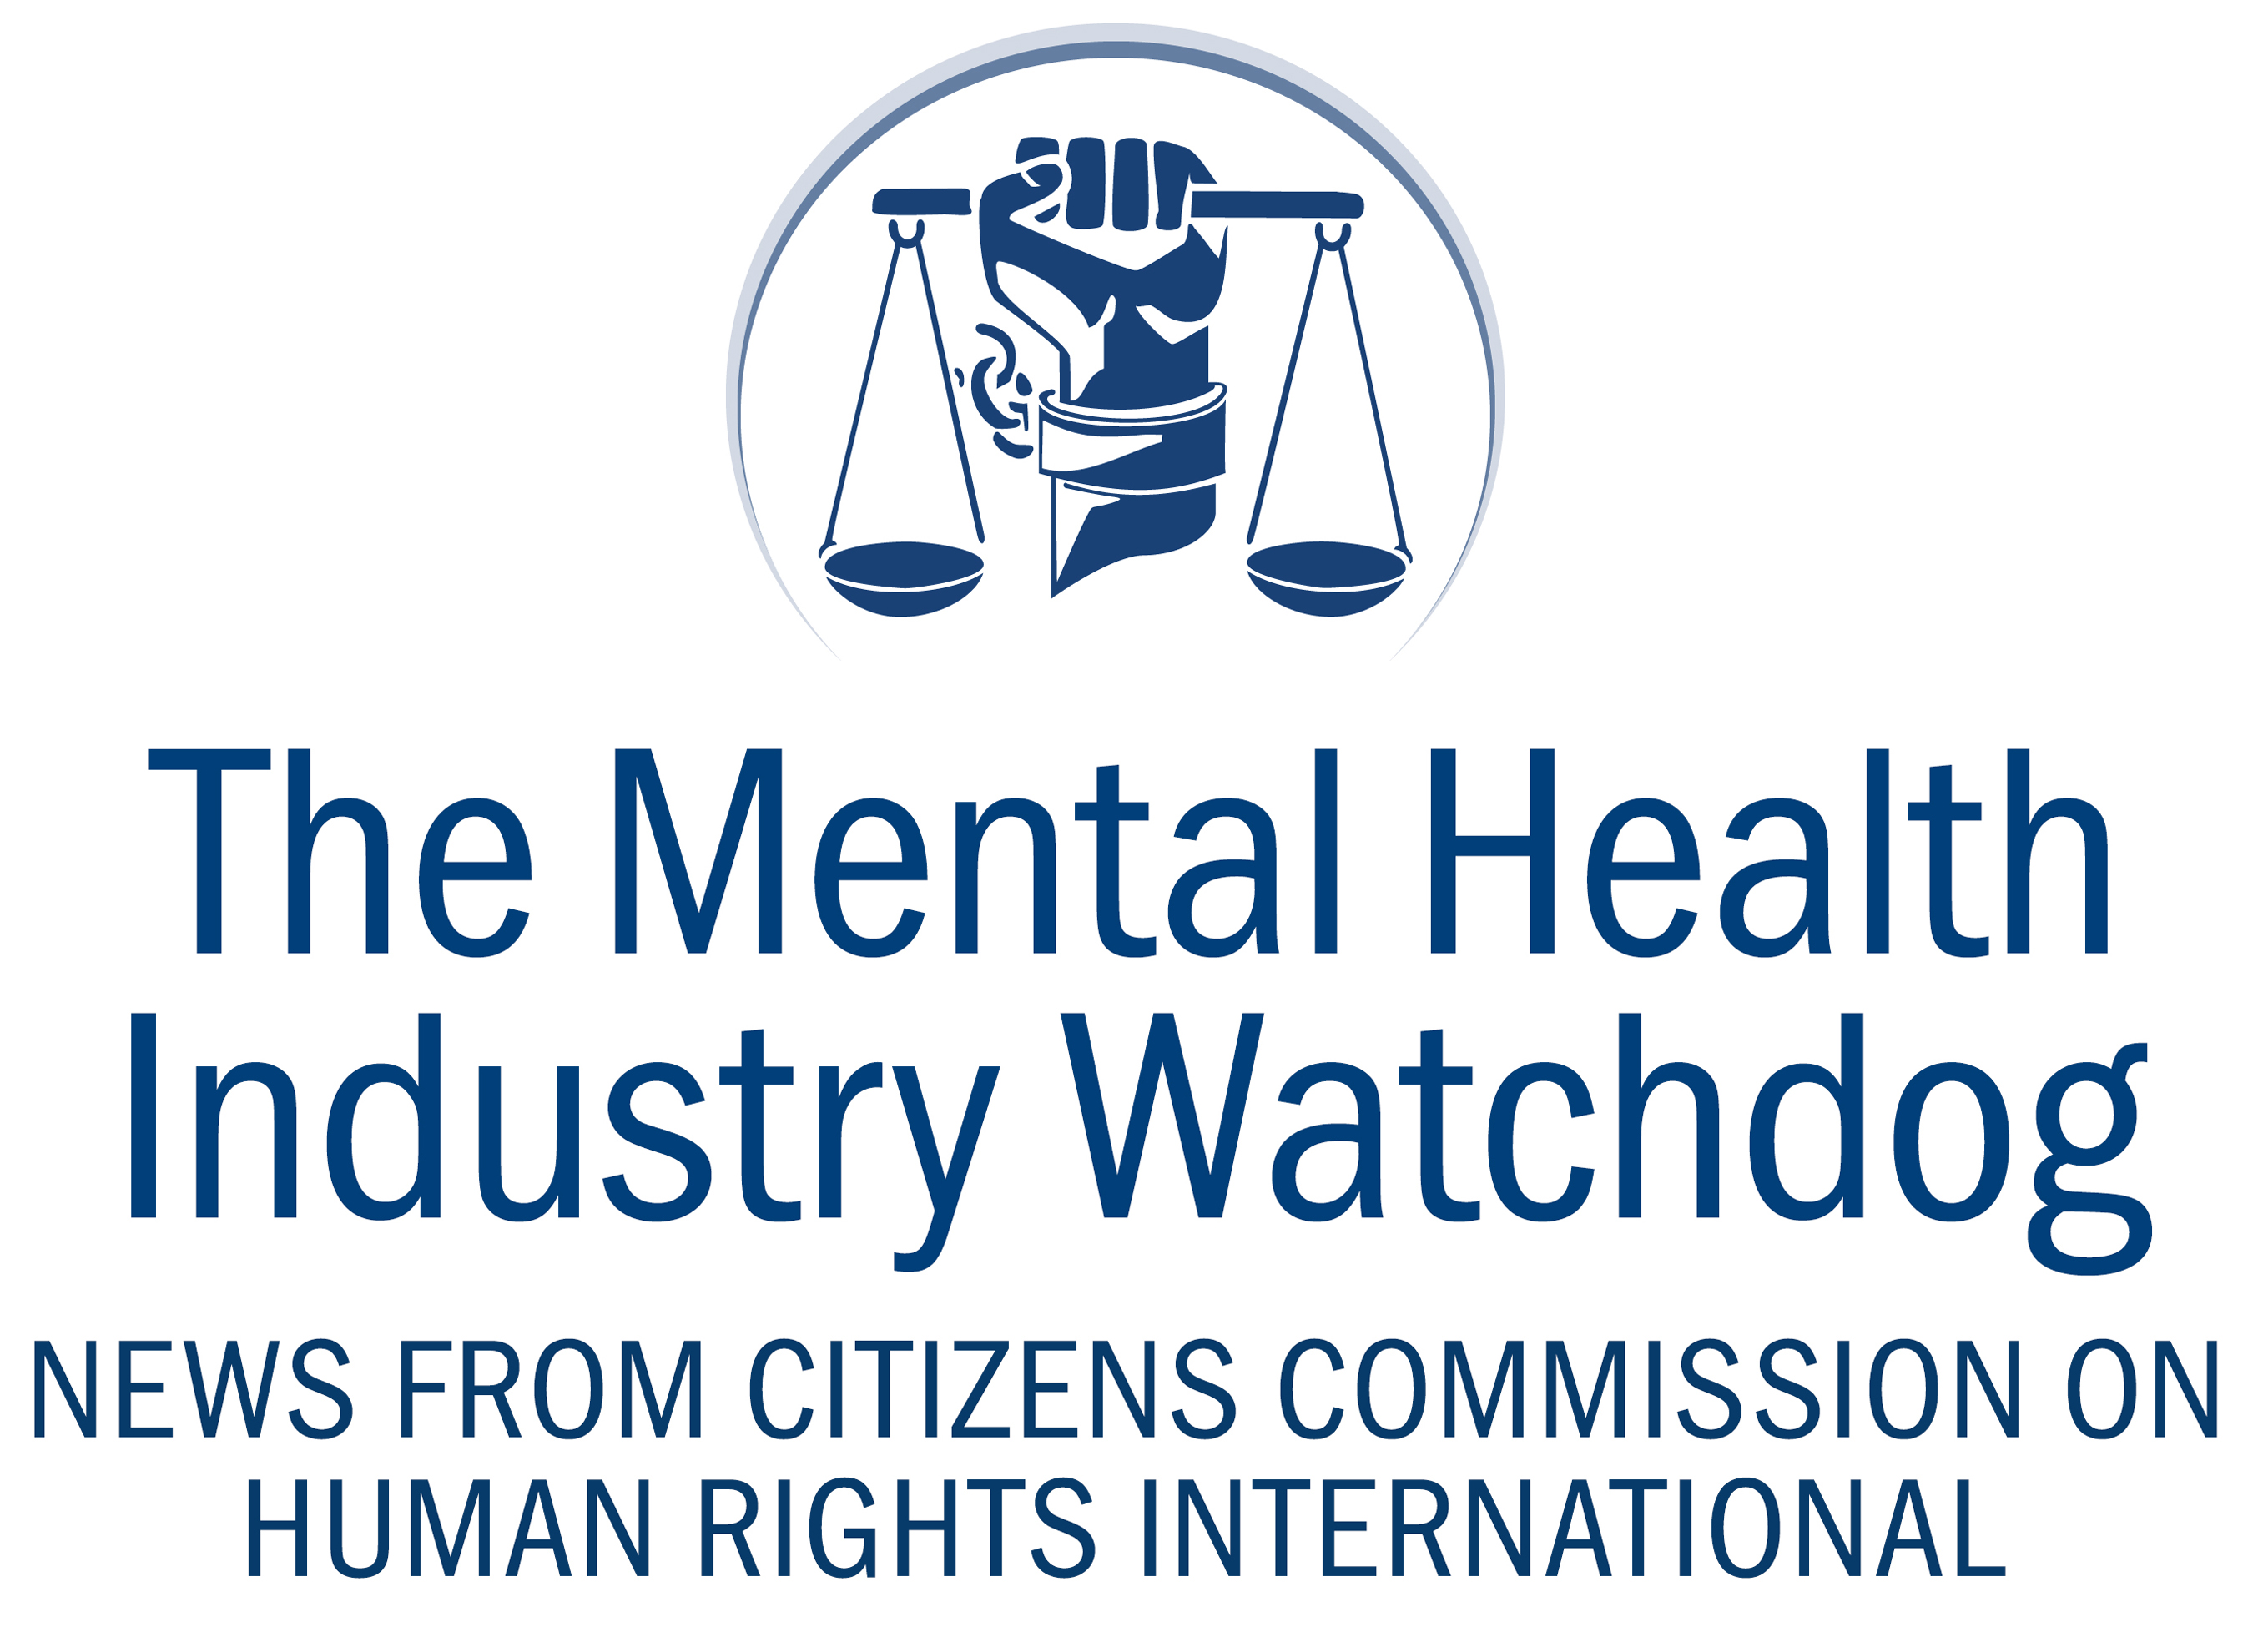 Mental Health Industry Watchdog Mobile Retina Logo